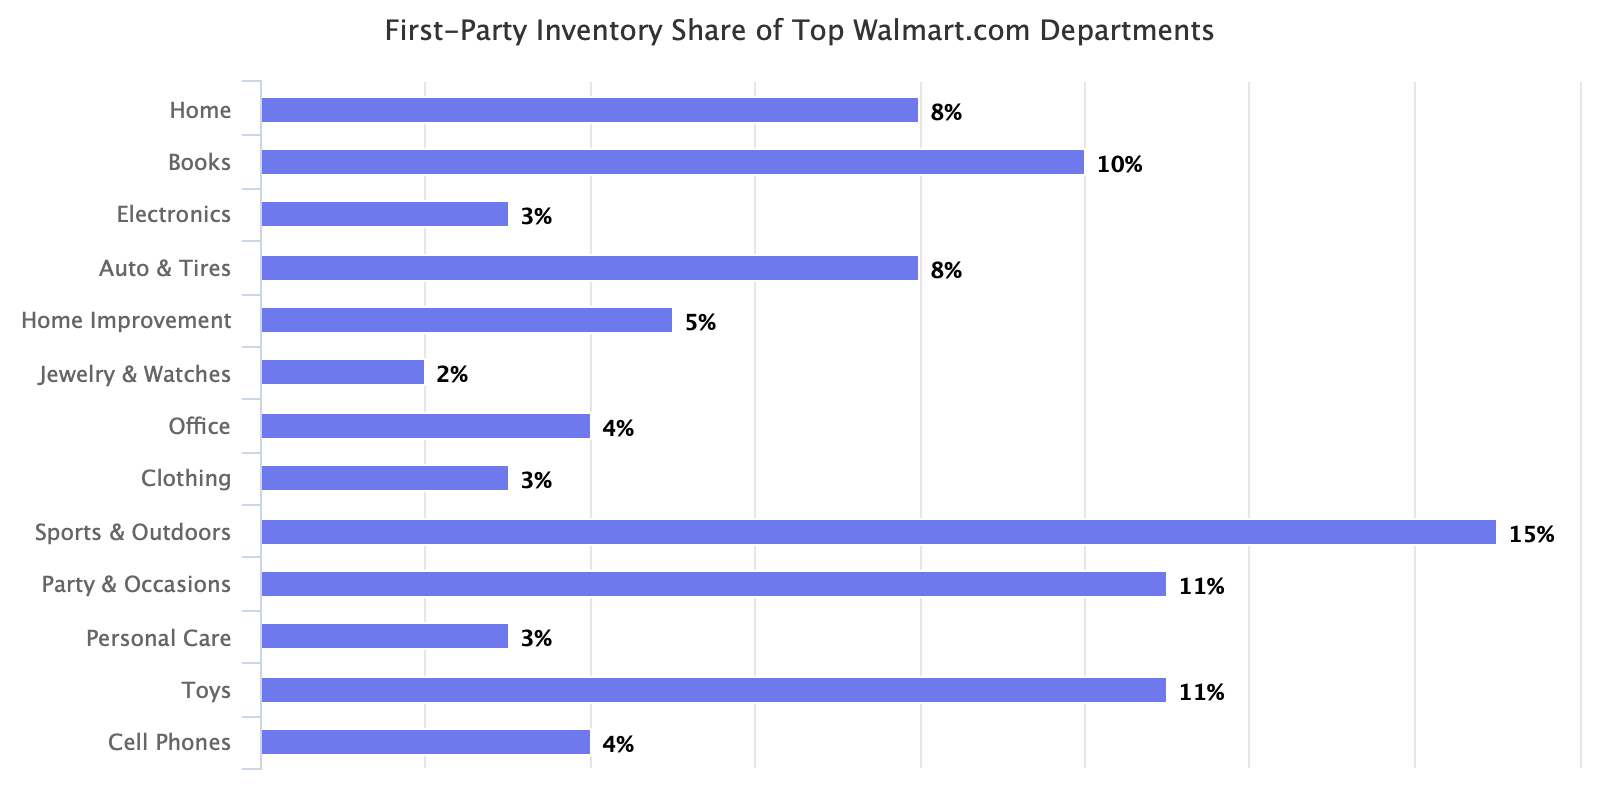 First-Party Inventory Share of Top Walmart.com Departments